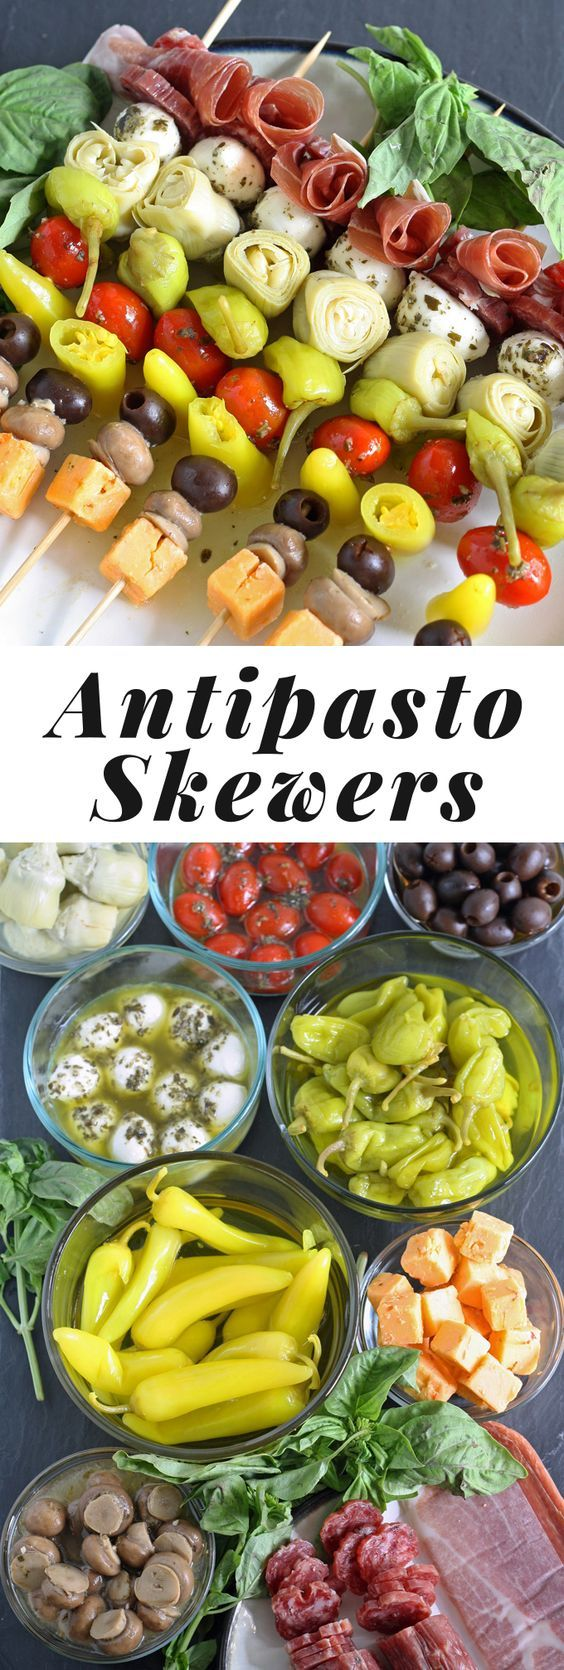 Italian appetizers easy recipes